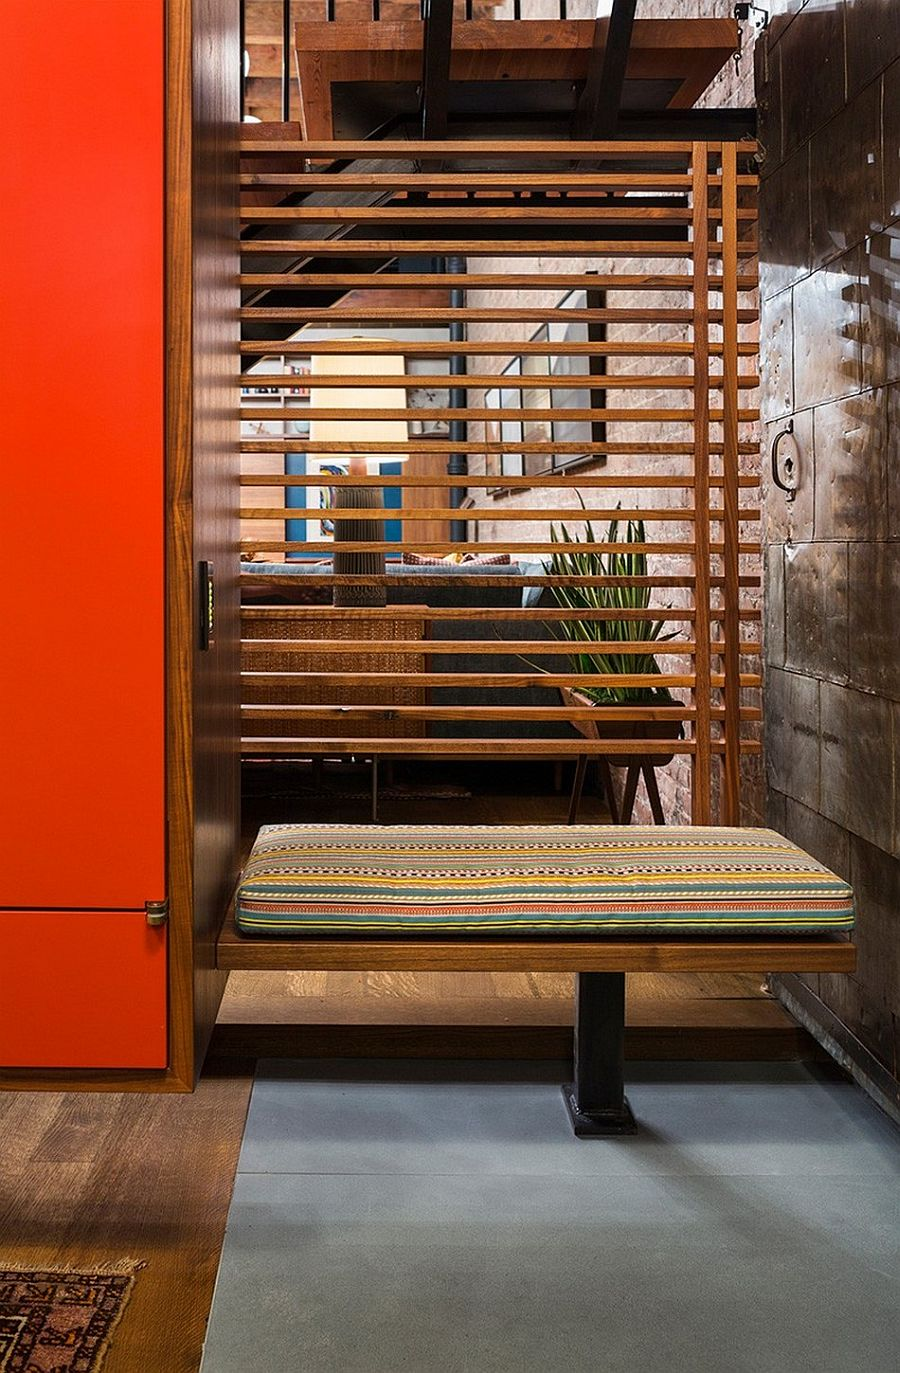 Wooden slats demarcate space even while allowing for visual continuity